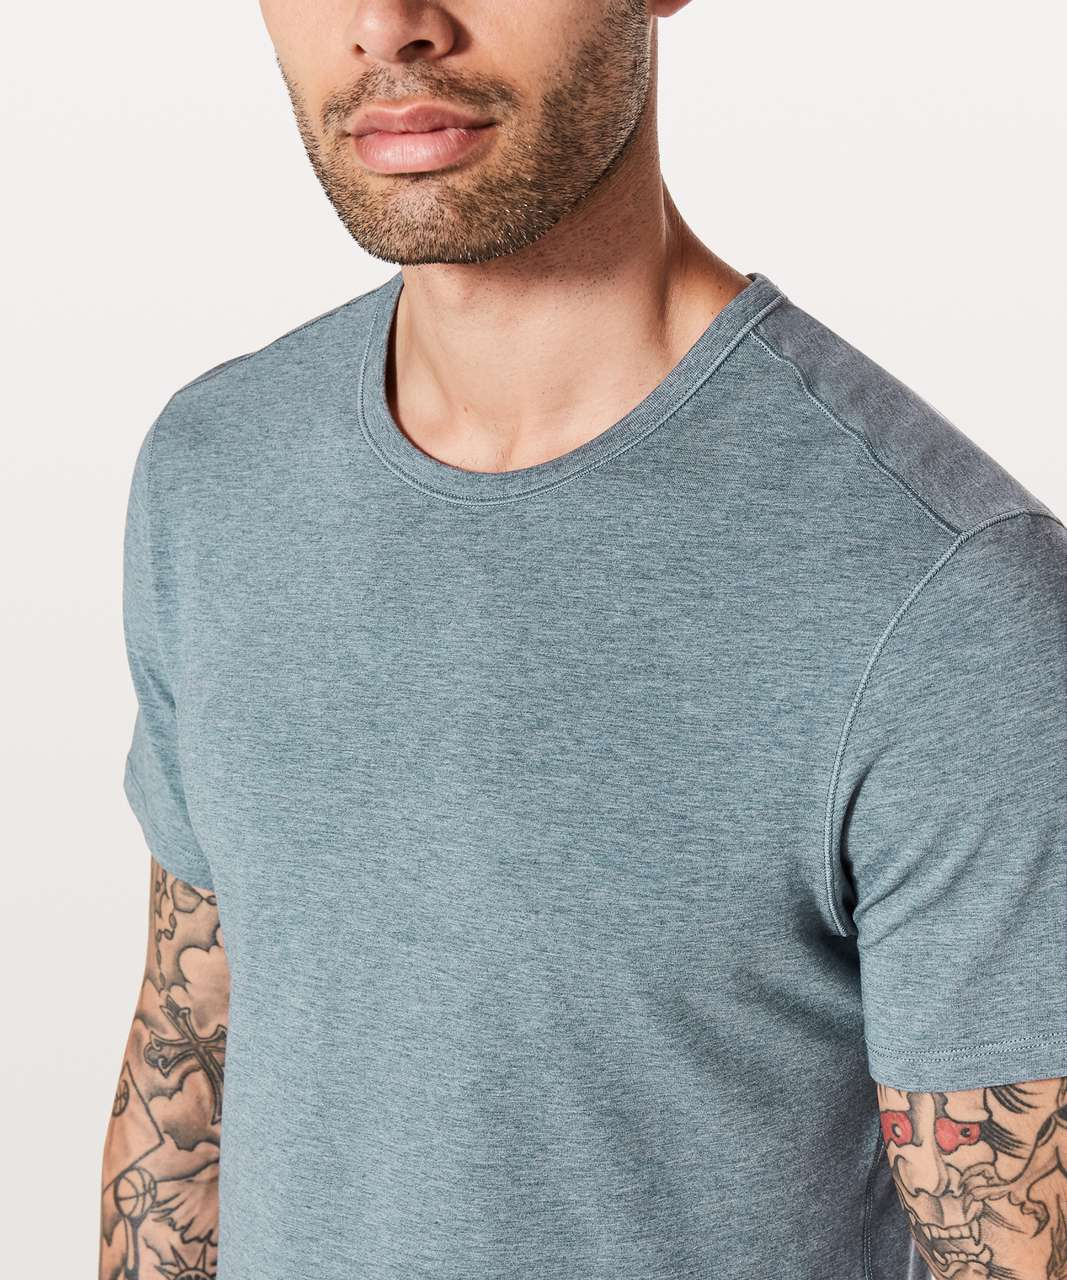 Lululemon 5 Year Basic Tee *Updated Fit - Heathered Mach Blue